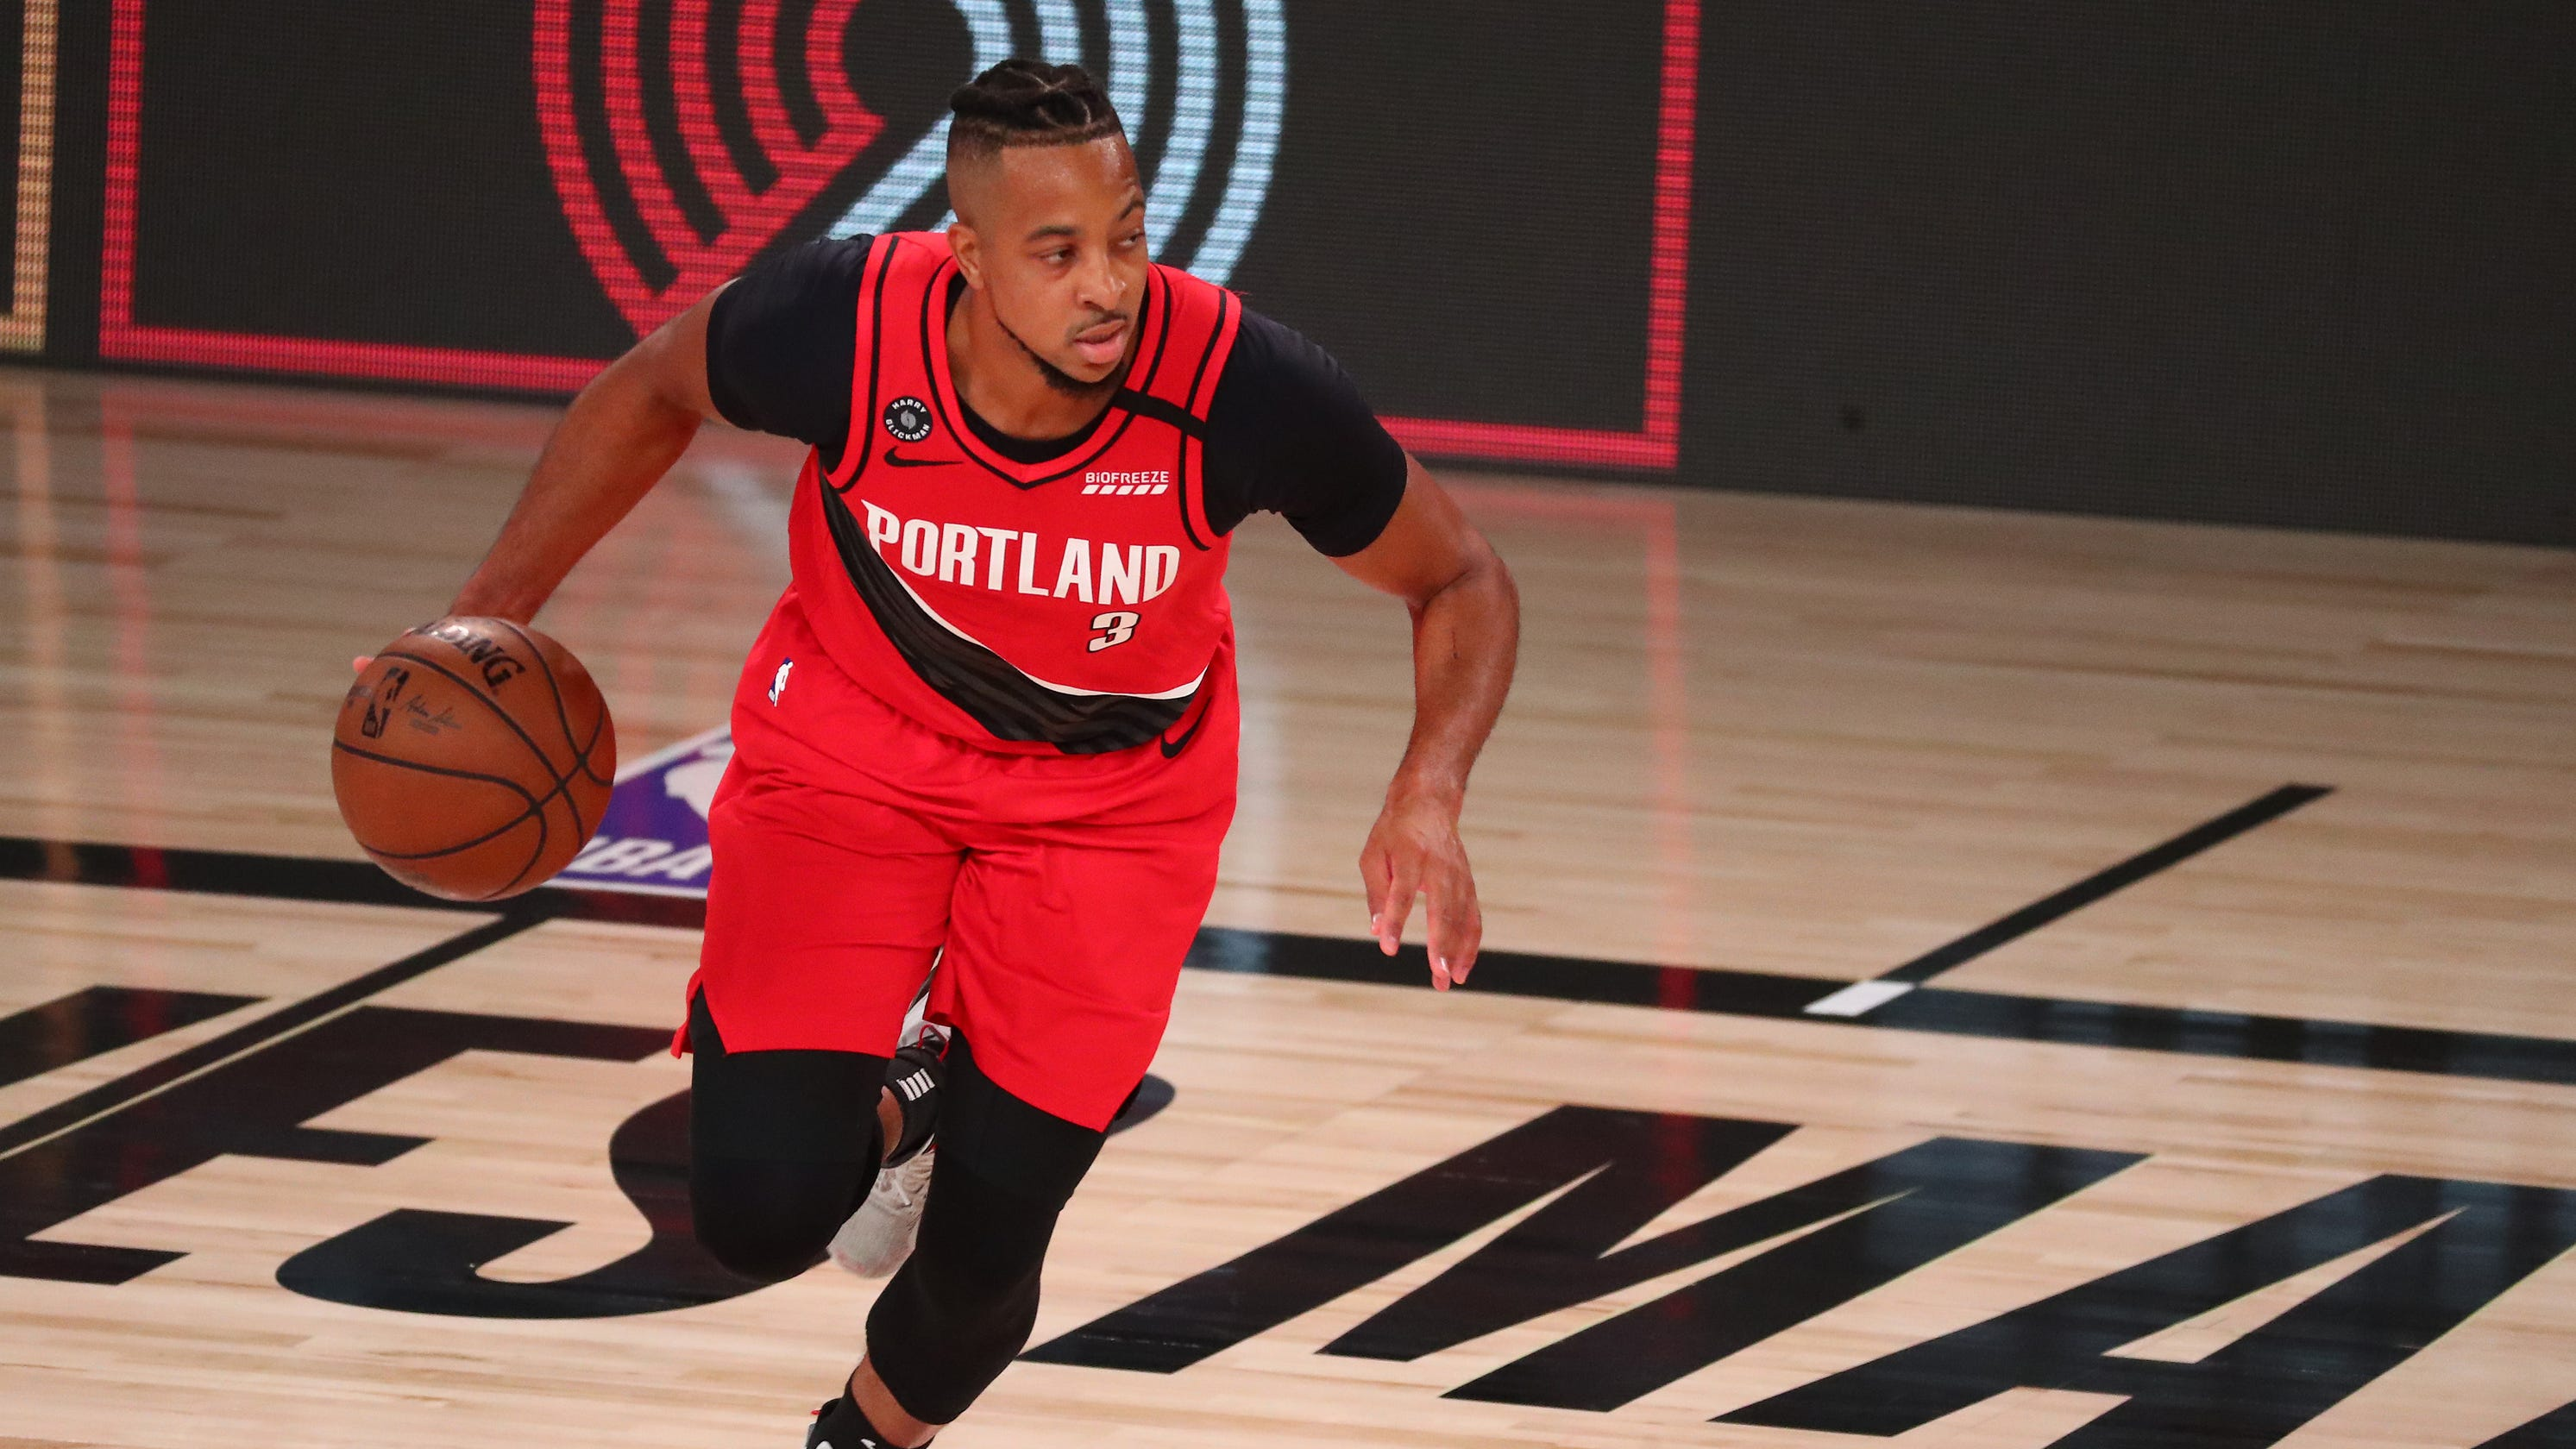 Blazers' C.J. McCollum hated debate, but it energized him for his show